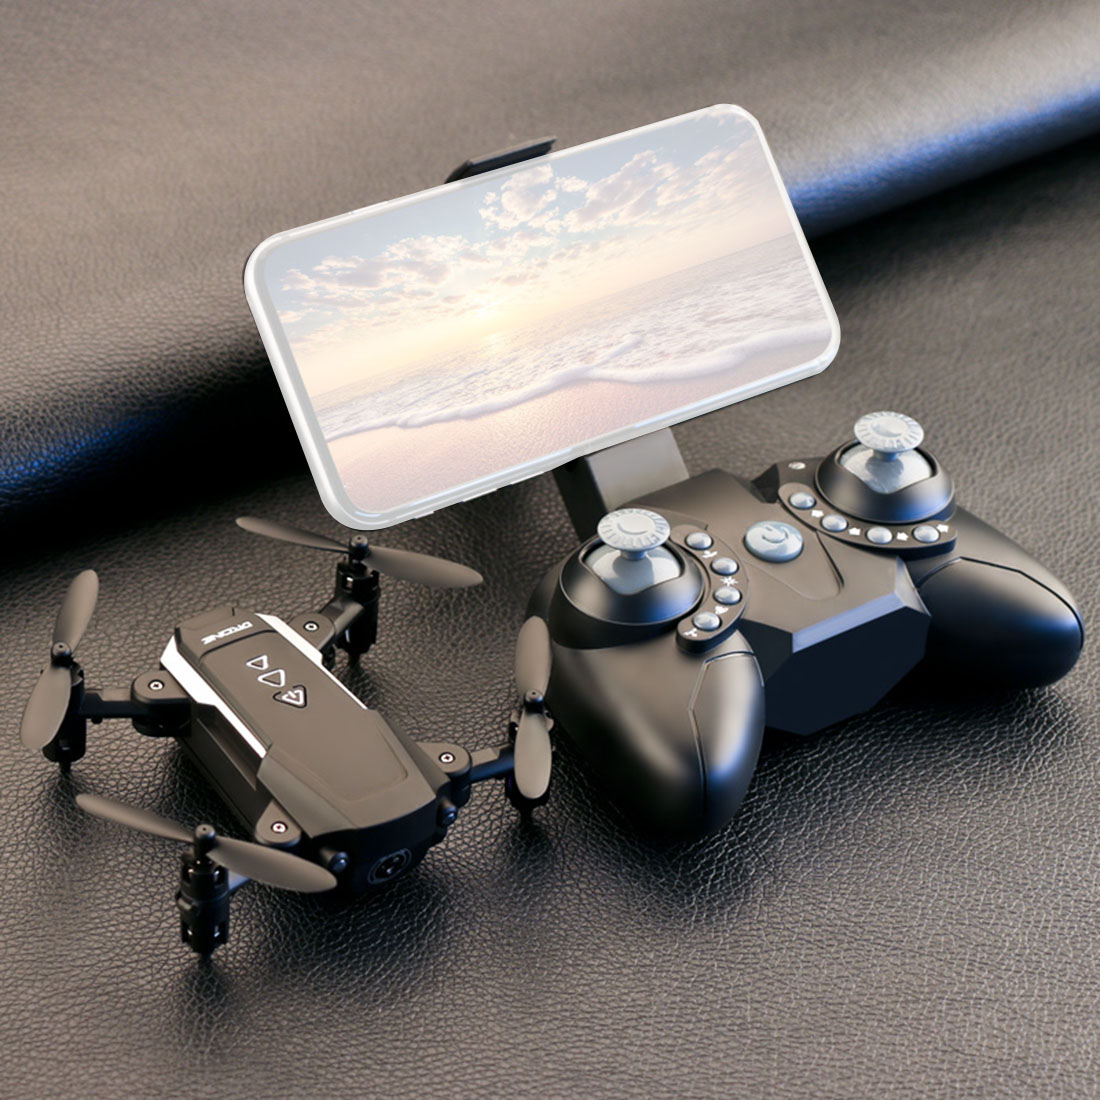 Mini Drone Aircraft-Toys Camera Rc-Quadcopter Altitude-Hold Flight-Time Wifi Foldable title=